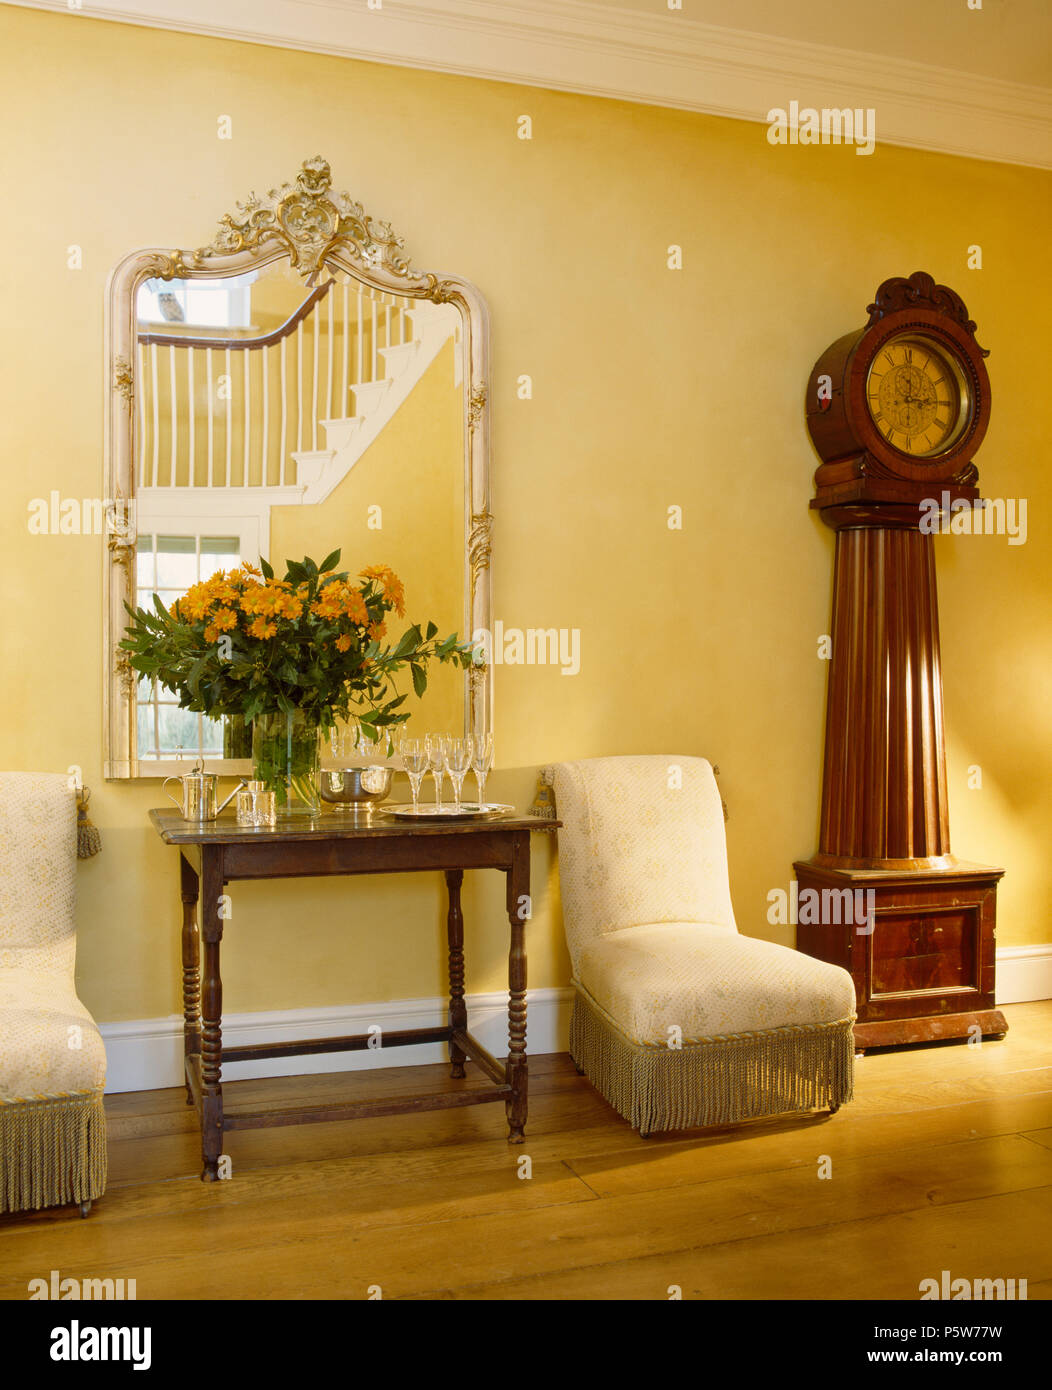 Ornate mirror above console table in country hall with antique long-case clock and upholstered cream chairs - Stock Image